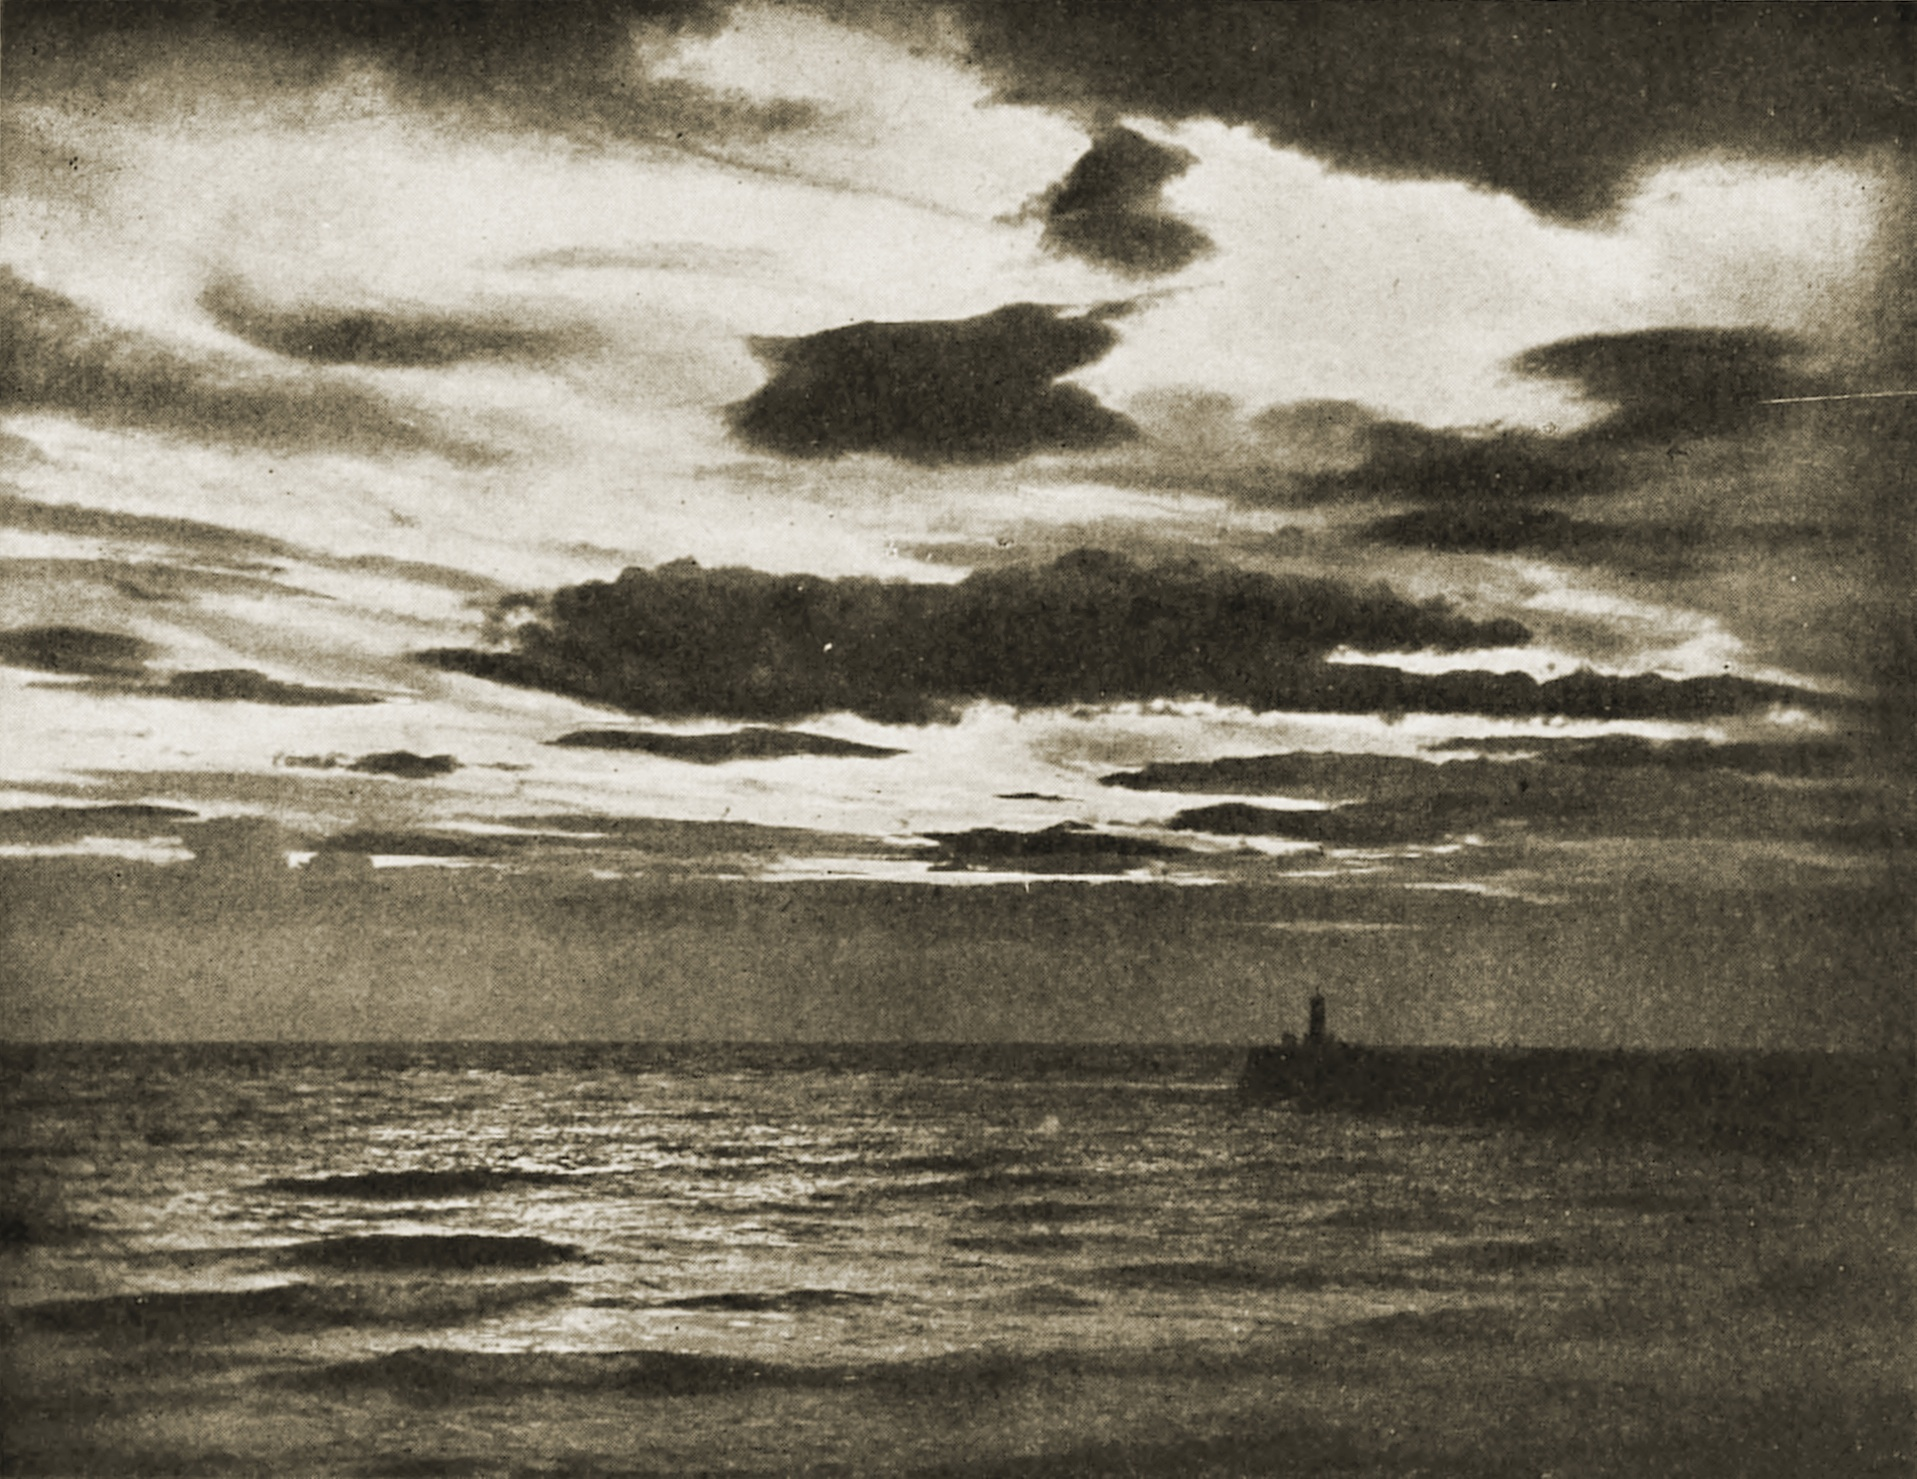 Sunset: Ayr Pier, Scotland by George Smith about 1908